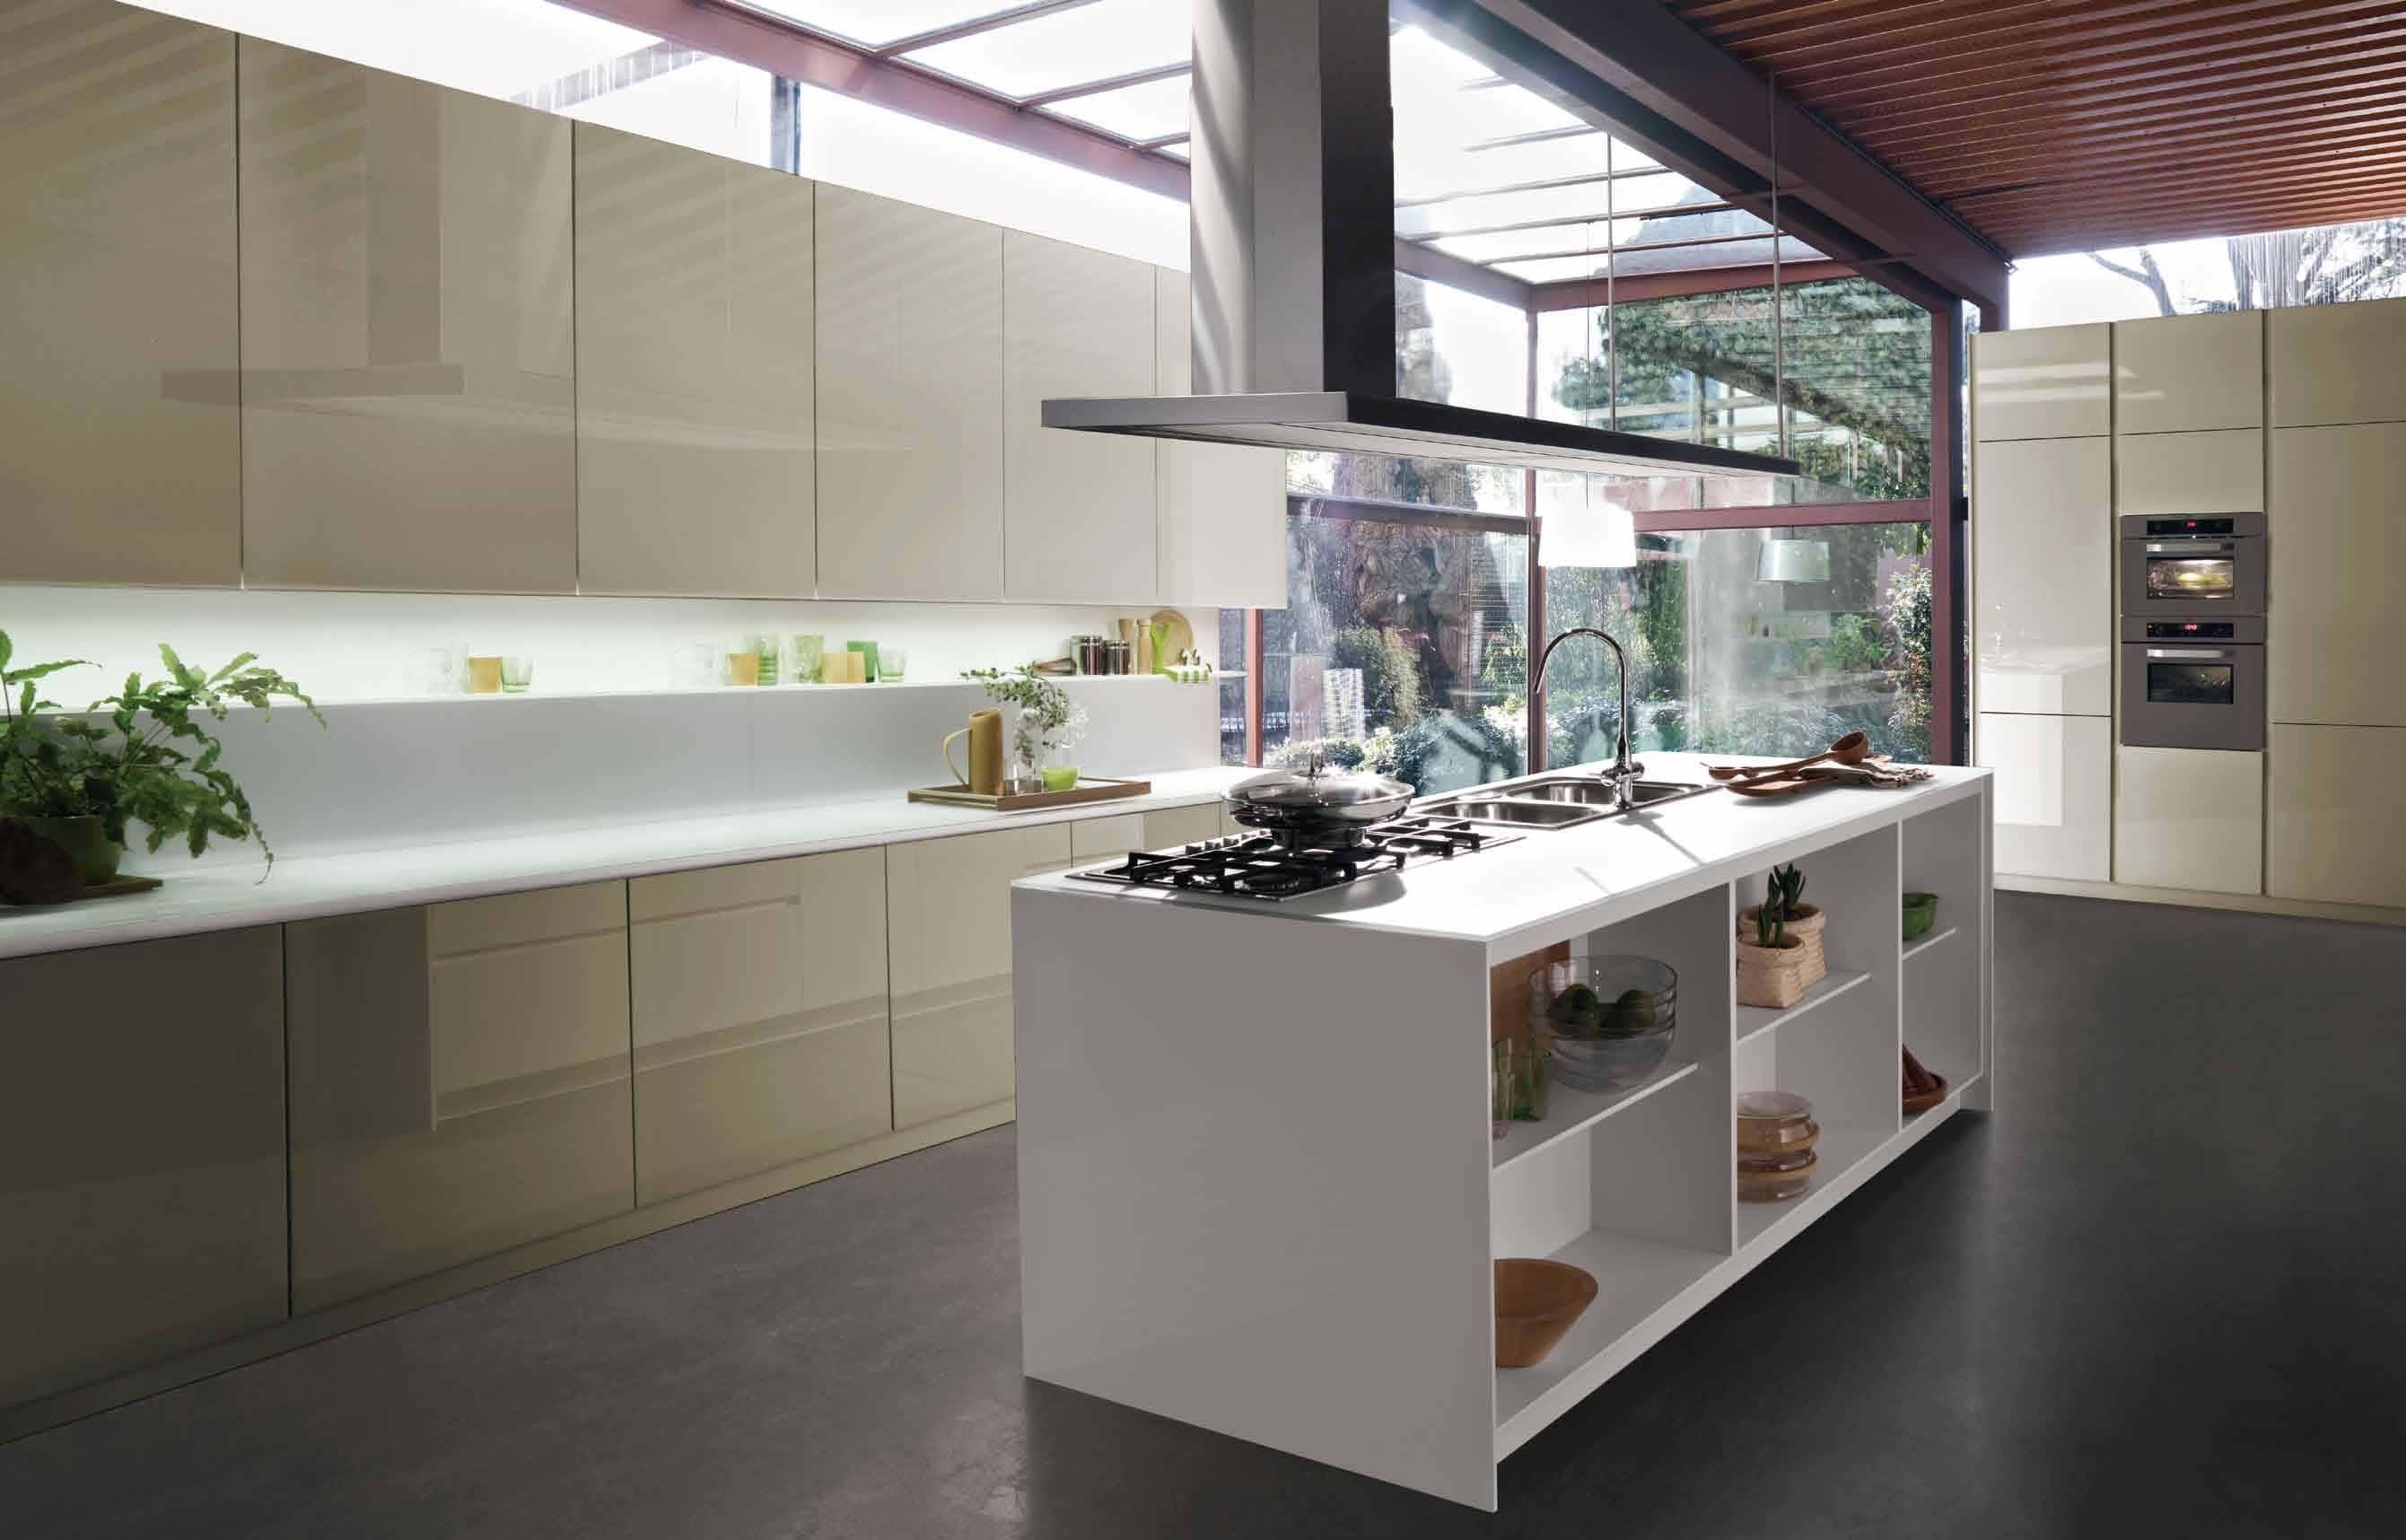 Costi cucine gallery of top cucine costi top cucine - Costo cucine lube ...